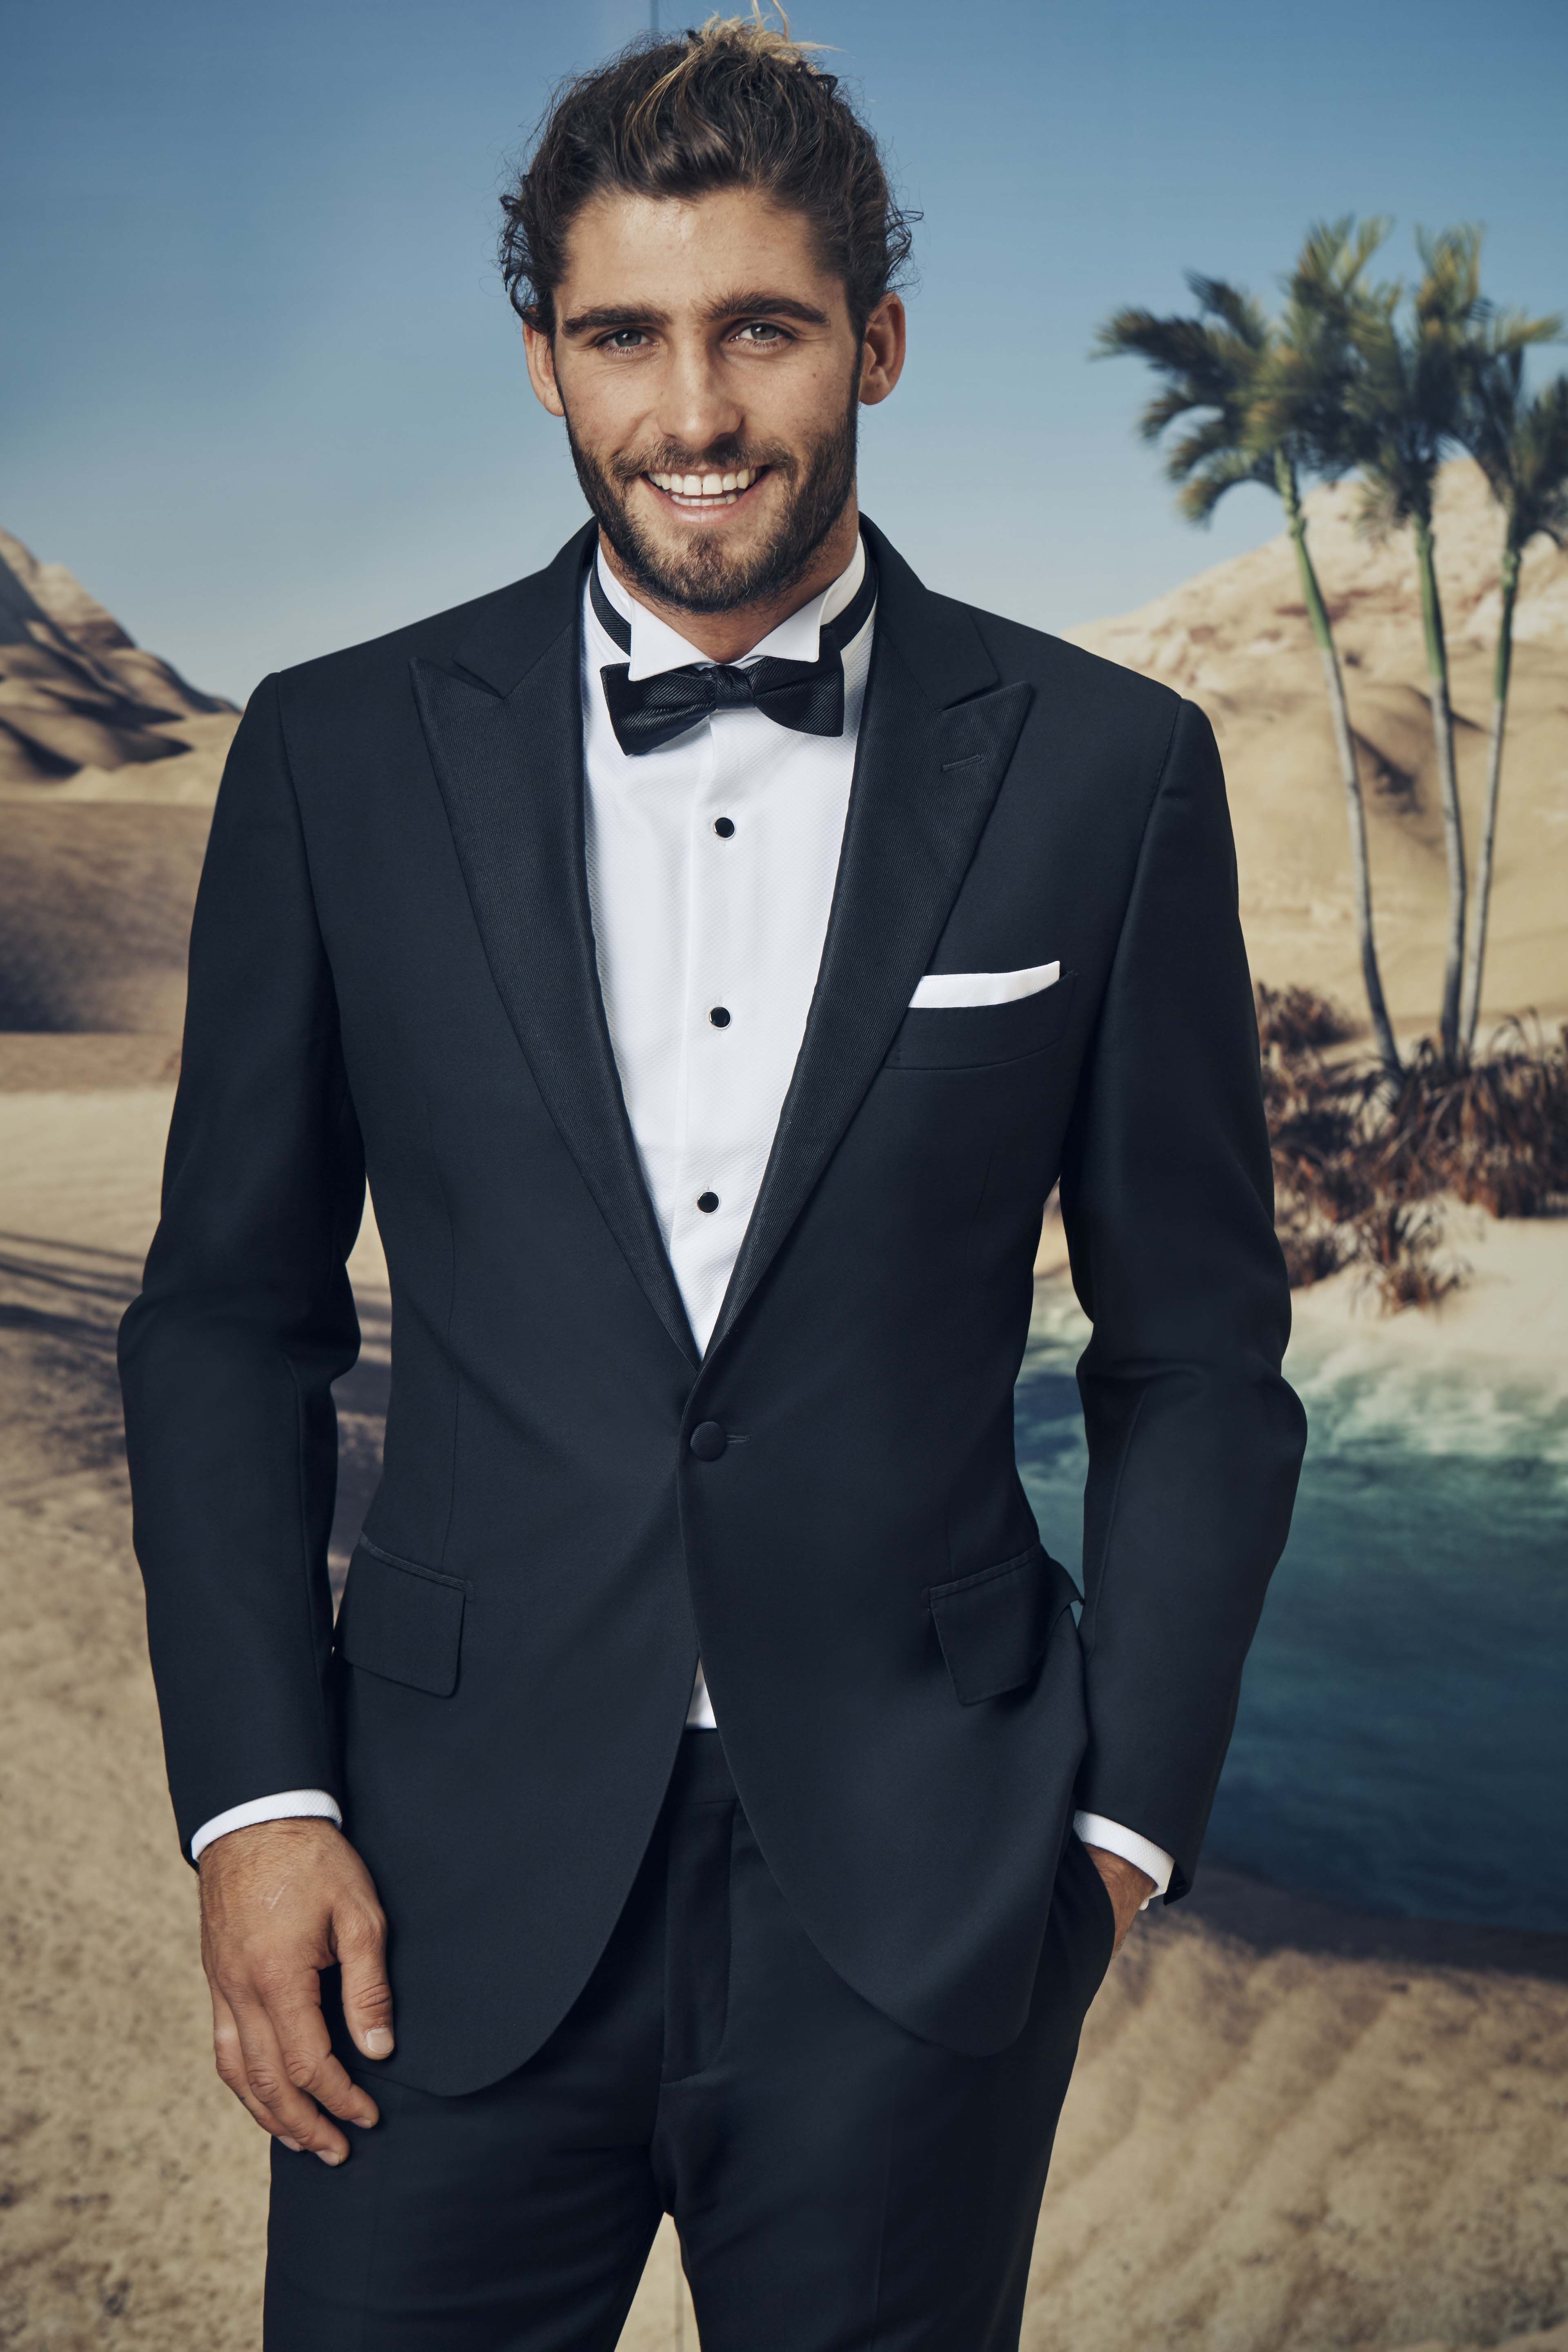 Comino Black Tuxedo Termao White Wing Collar Shirt Mauricio Black